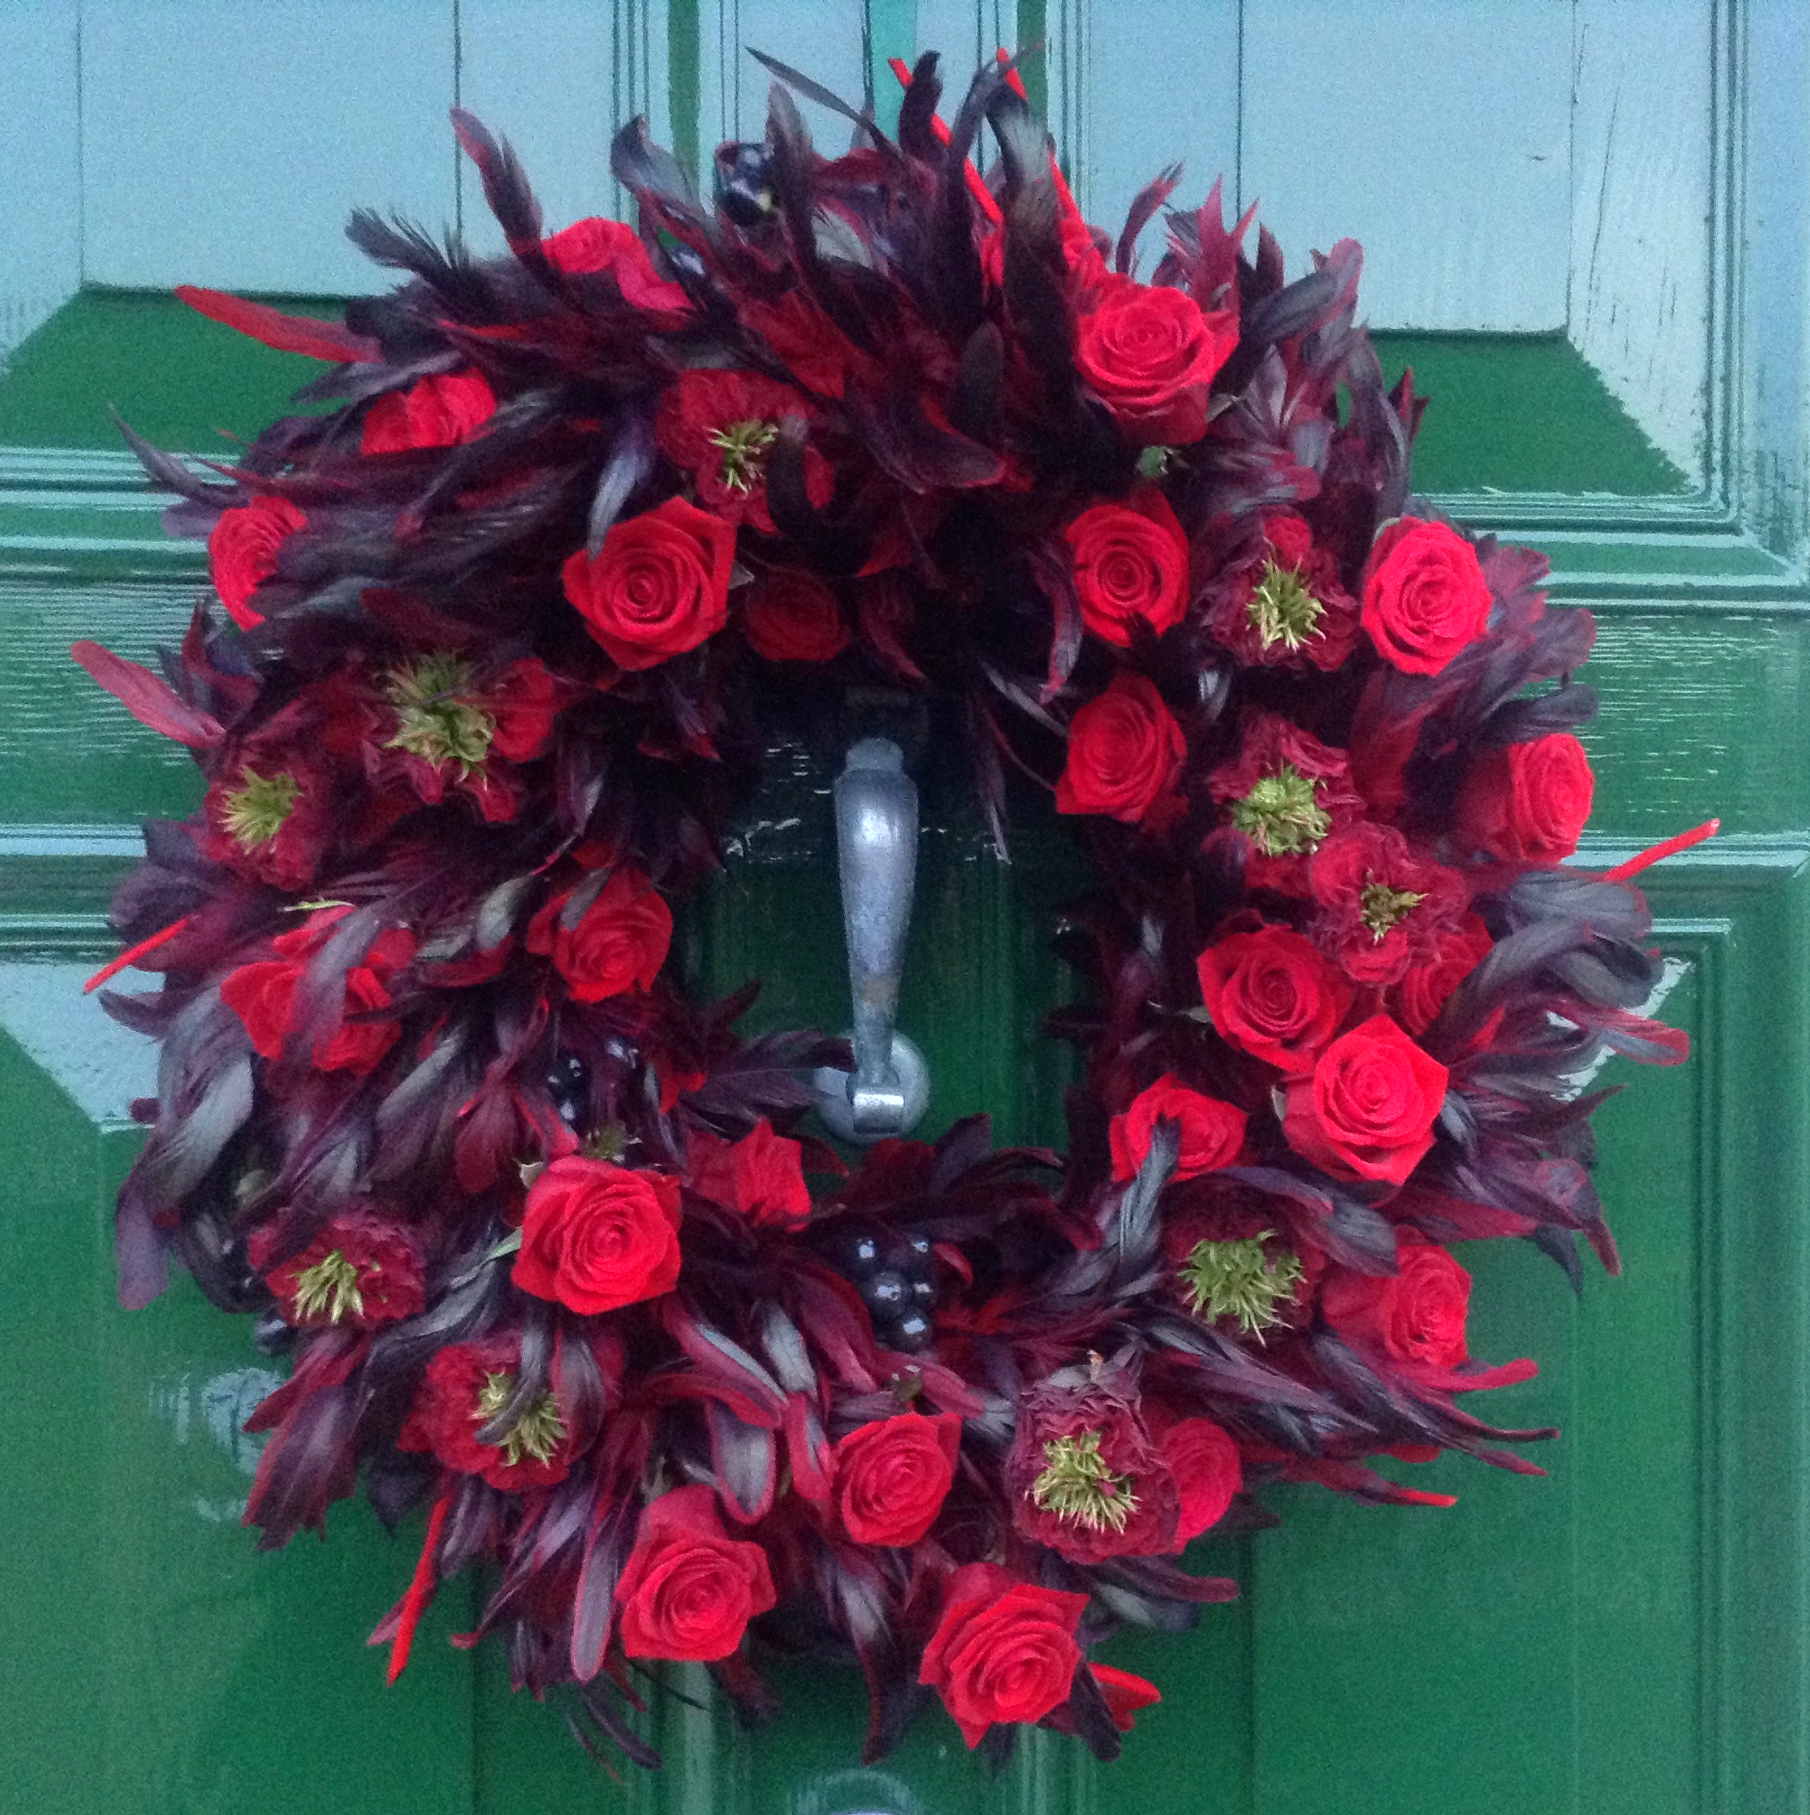 A Christmas wreath which featured on the front page of The Flower Arranger magazine and contained rich, darkest red feathers, red garden roses with green centres, traditional red roses and black berries.